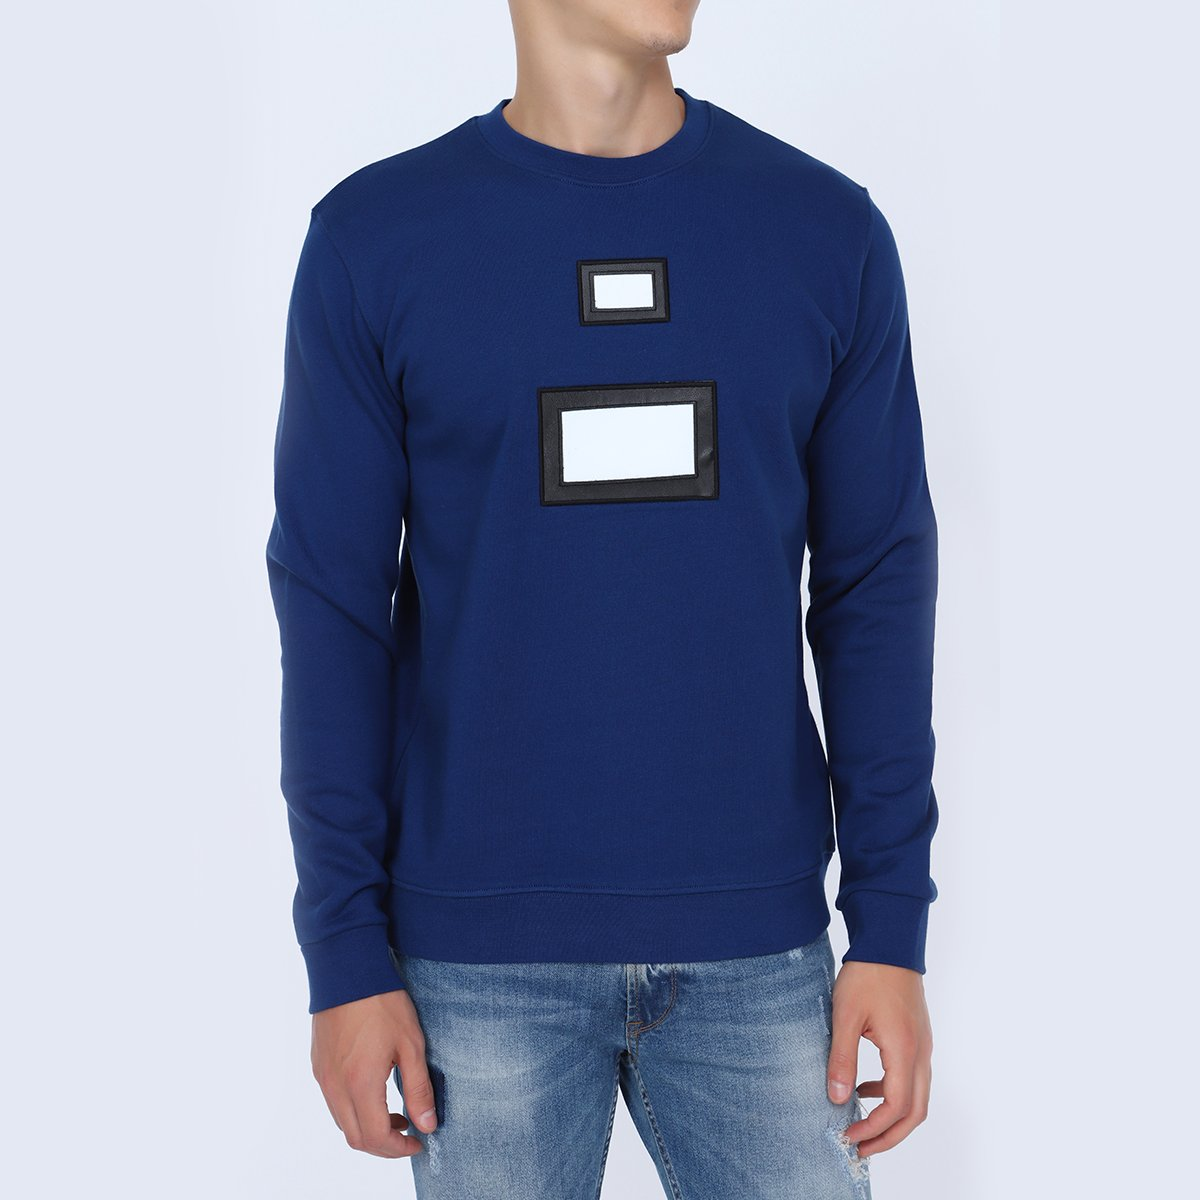 Buy Blue Sweatshirt for Men